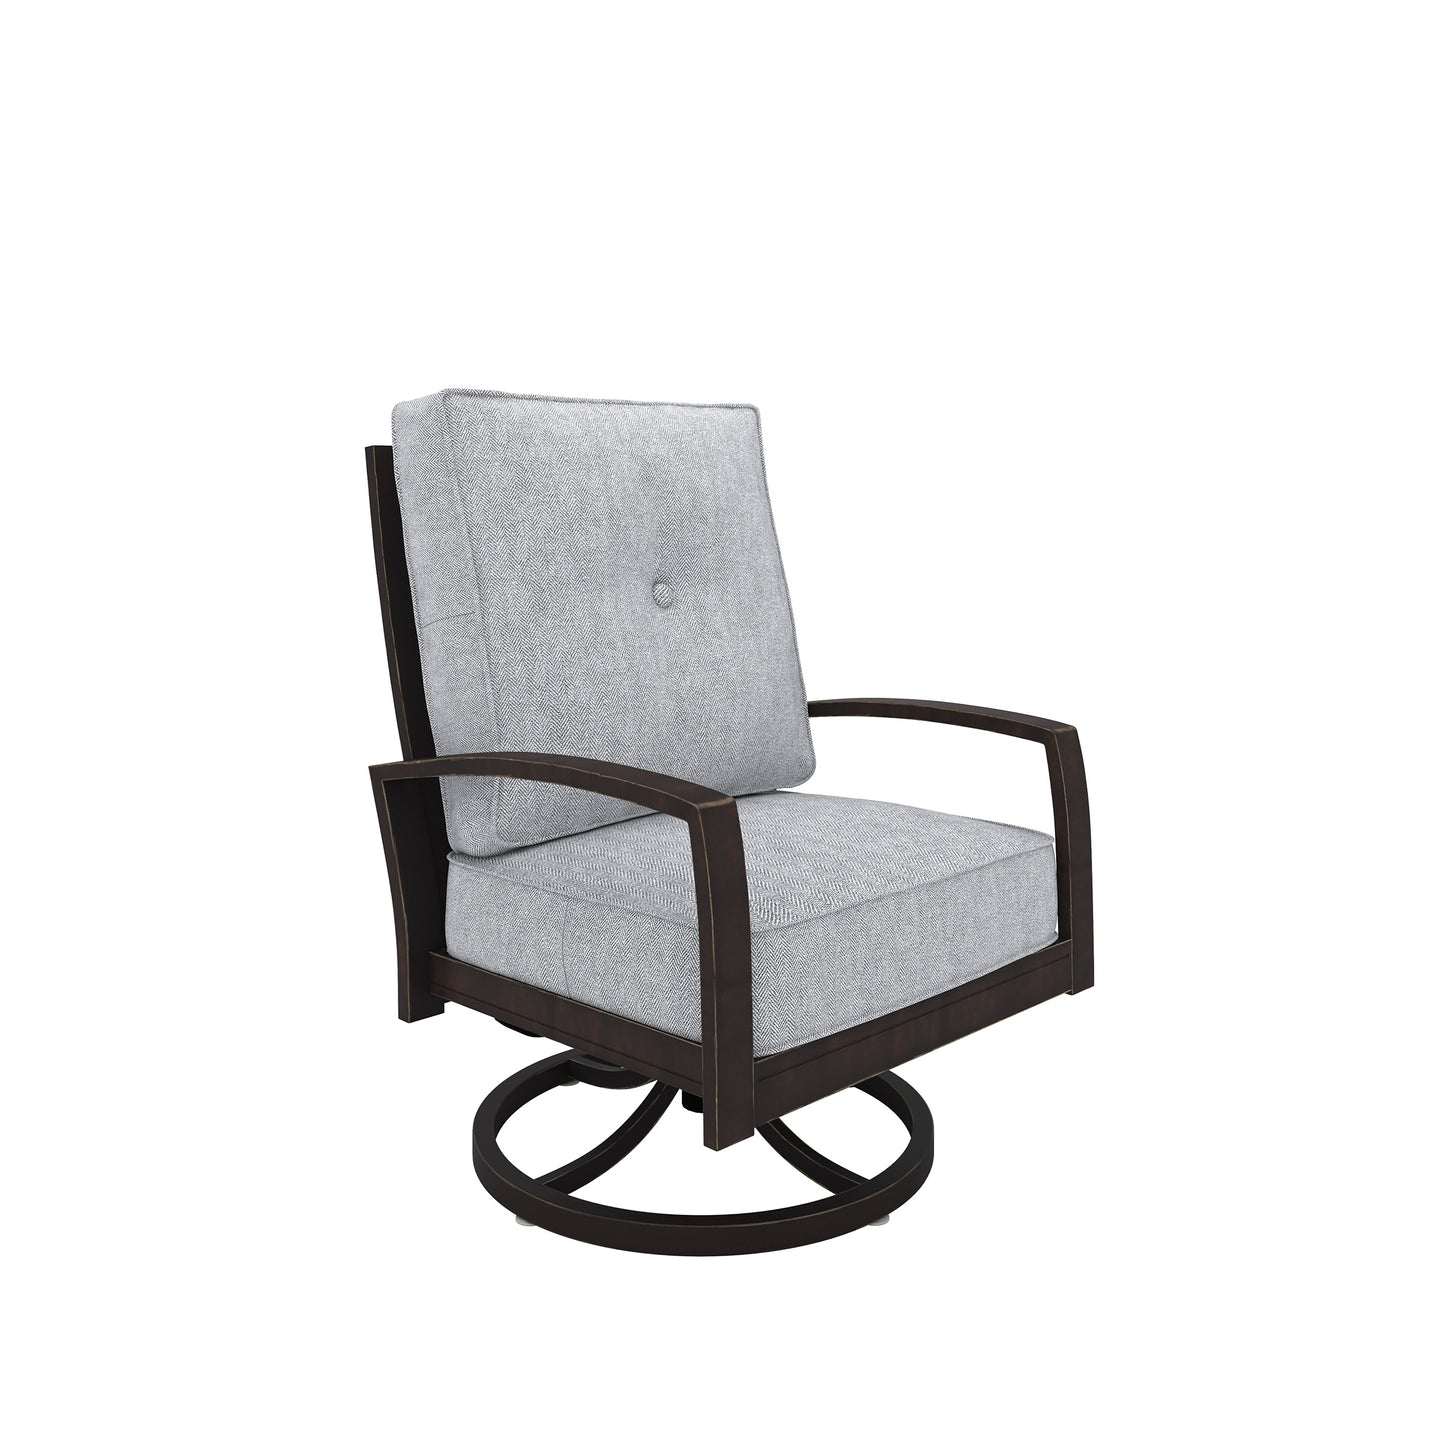 Signature Design P414-821 Castle Island Brown Gray Outdoor Dining Chair